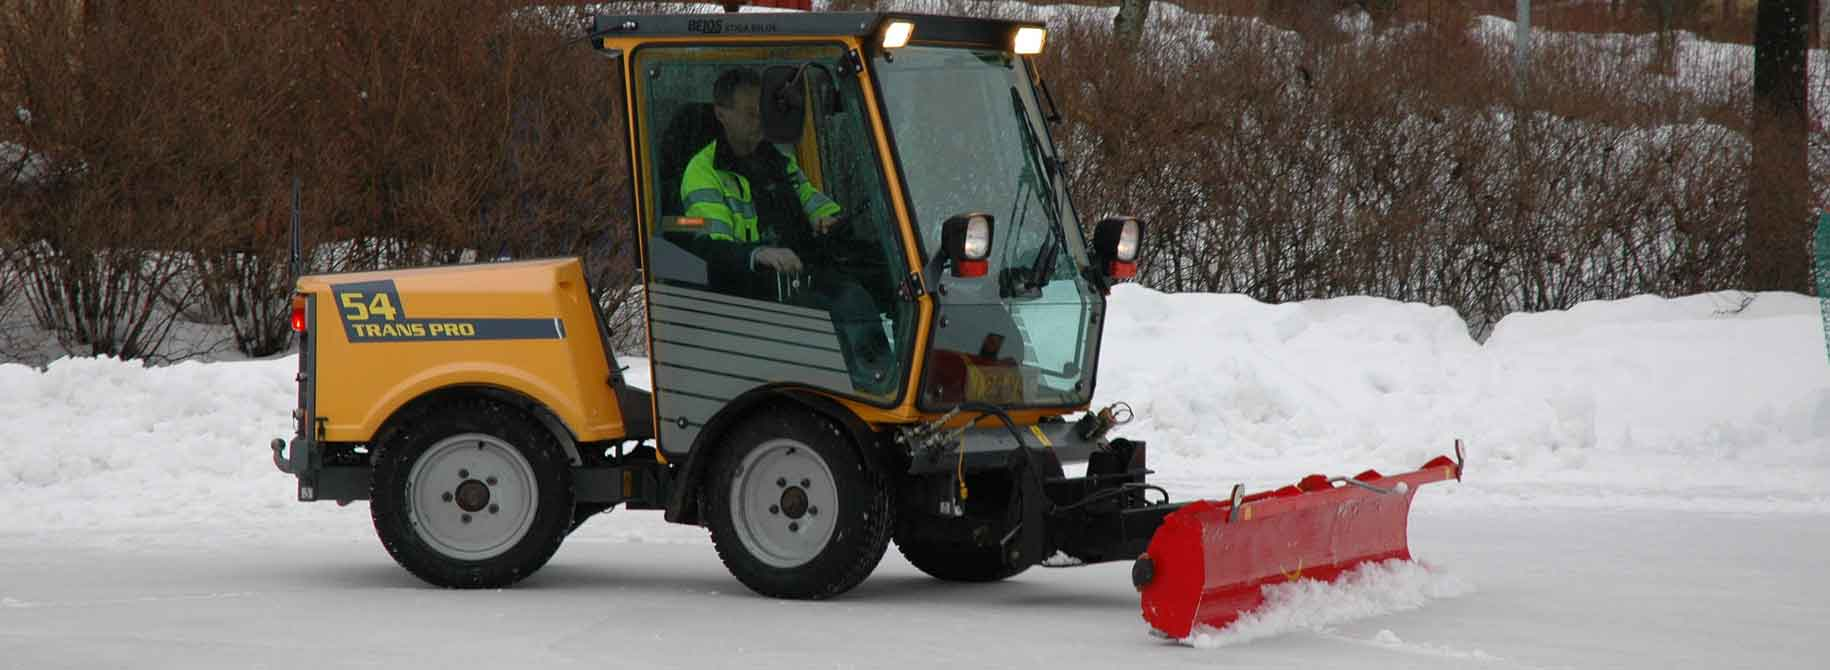 picture of a snow ploughing vehicle